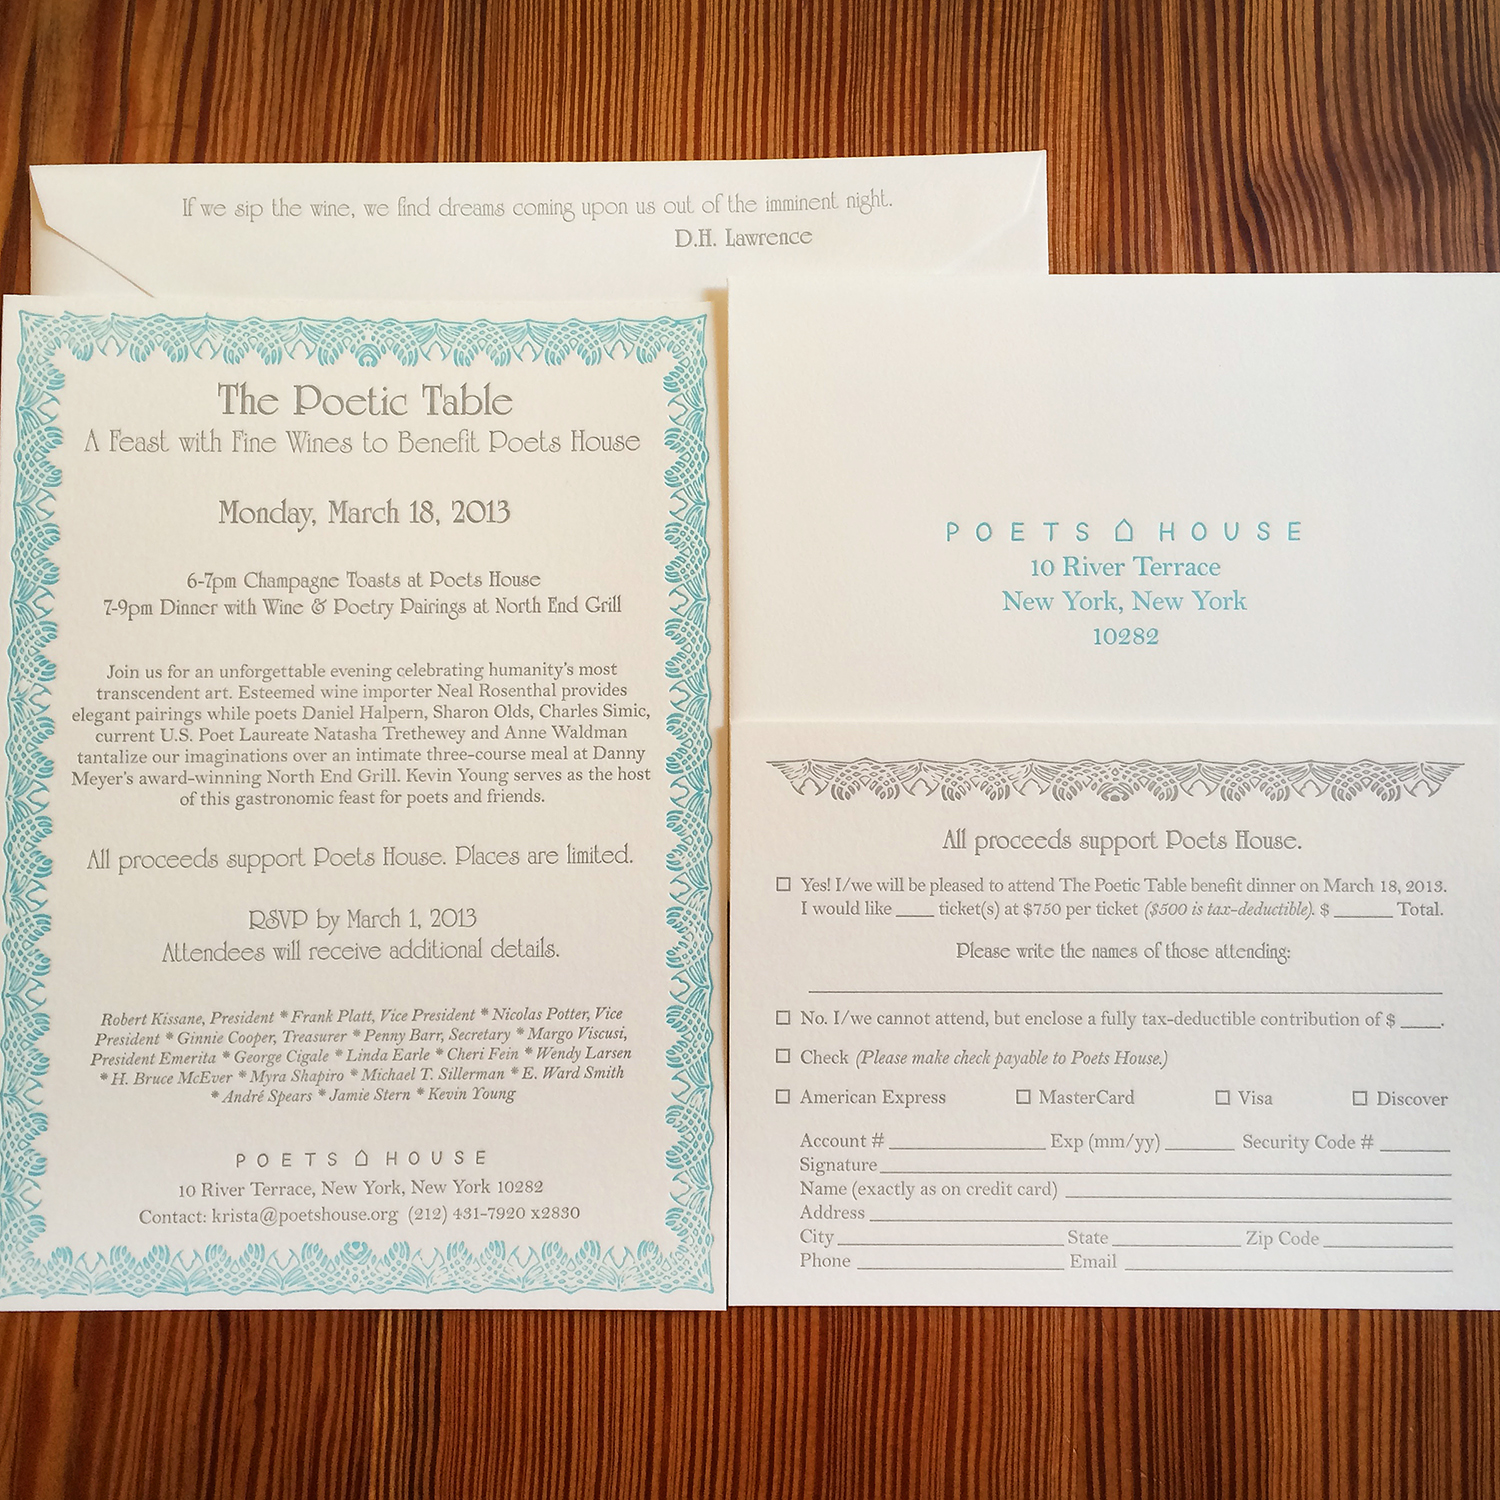 Poets House Poetic Table Invitation.jpg